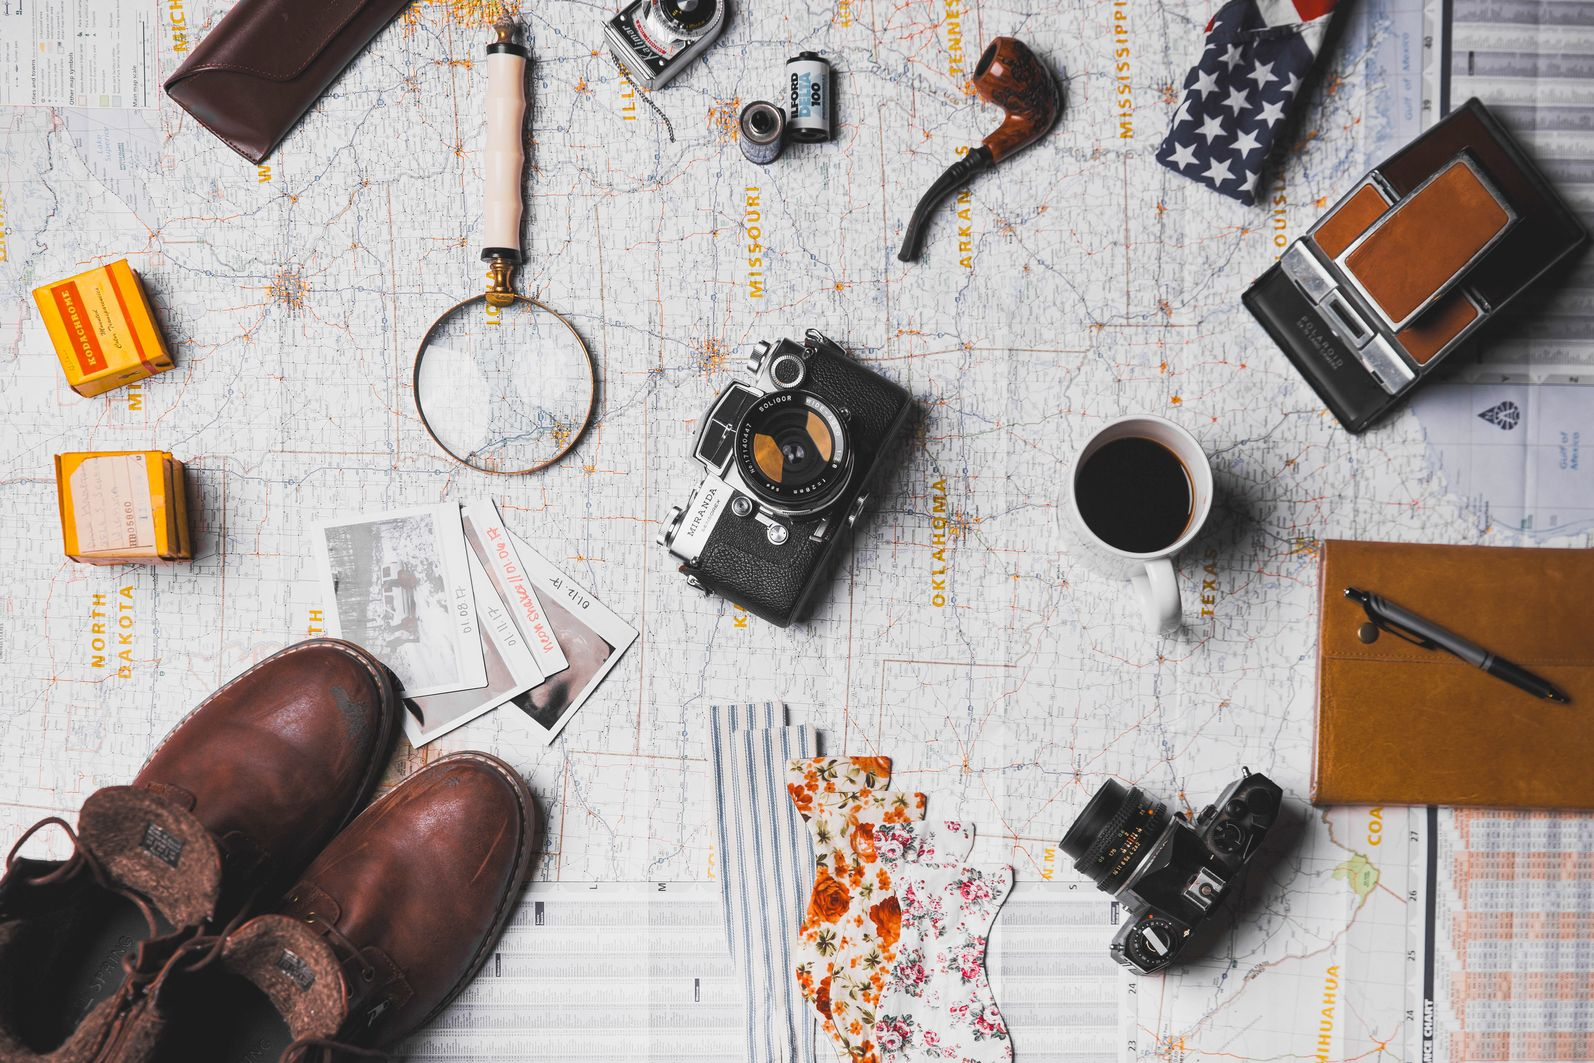 Aerial view of miscellaneous traveling equipment scattered across a map to indicate planning and organization beforehand are career skills you learn from traveling